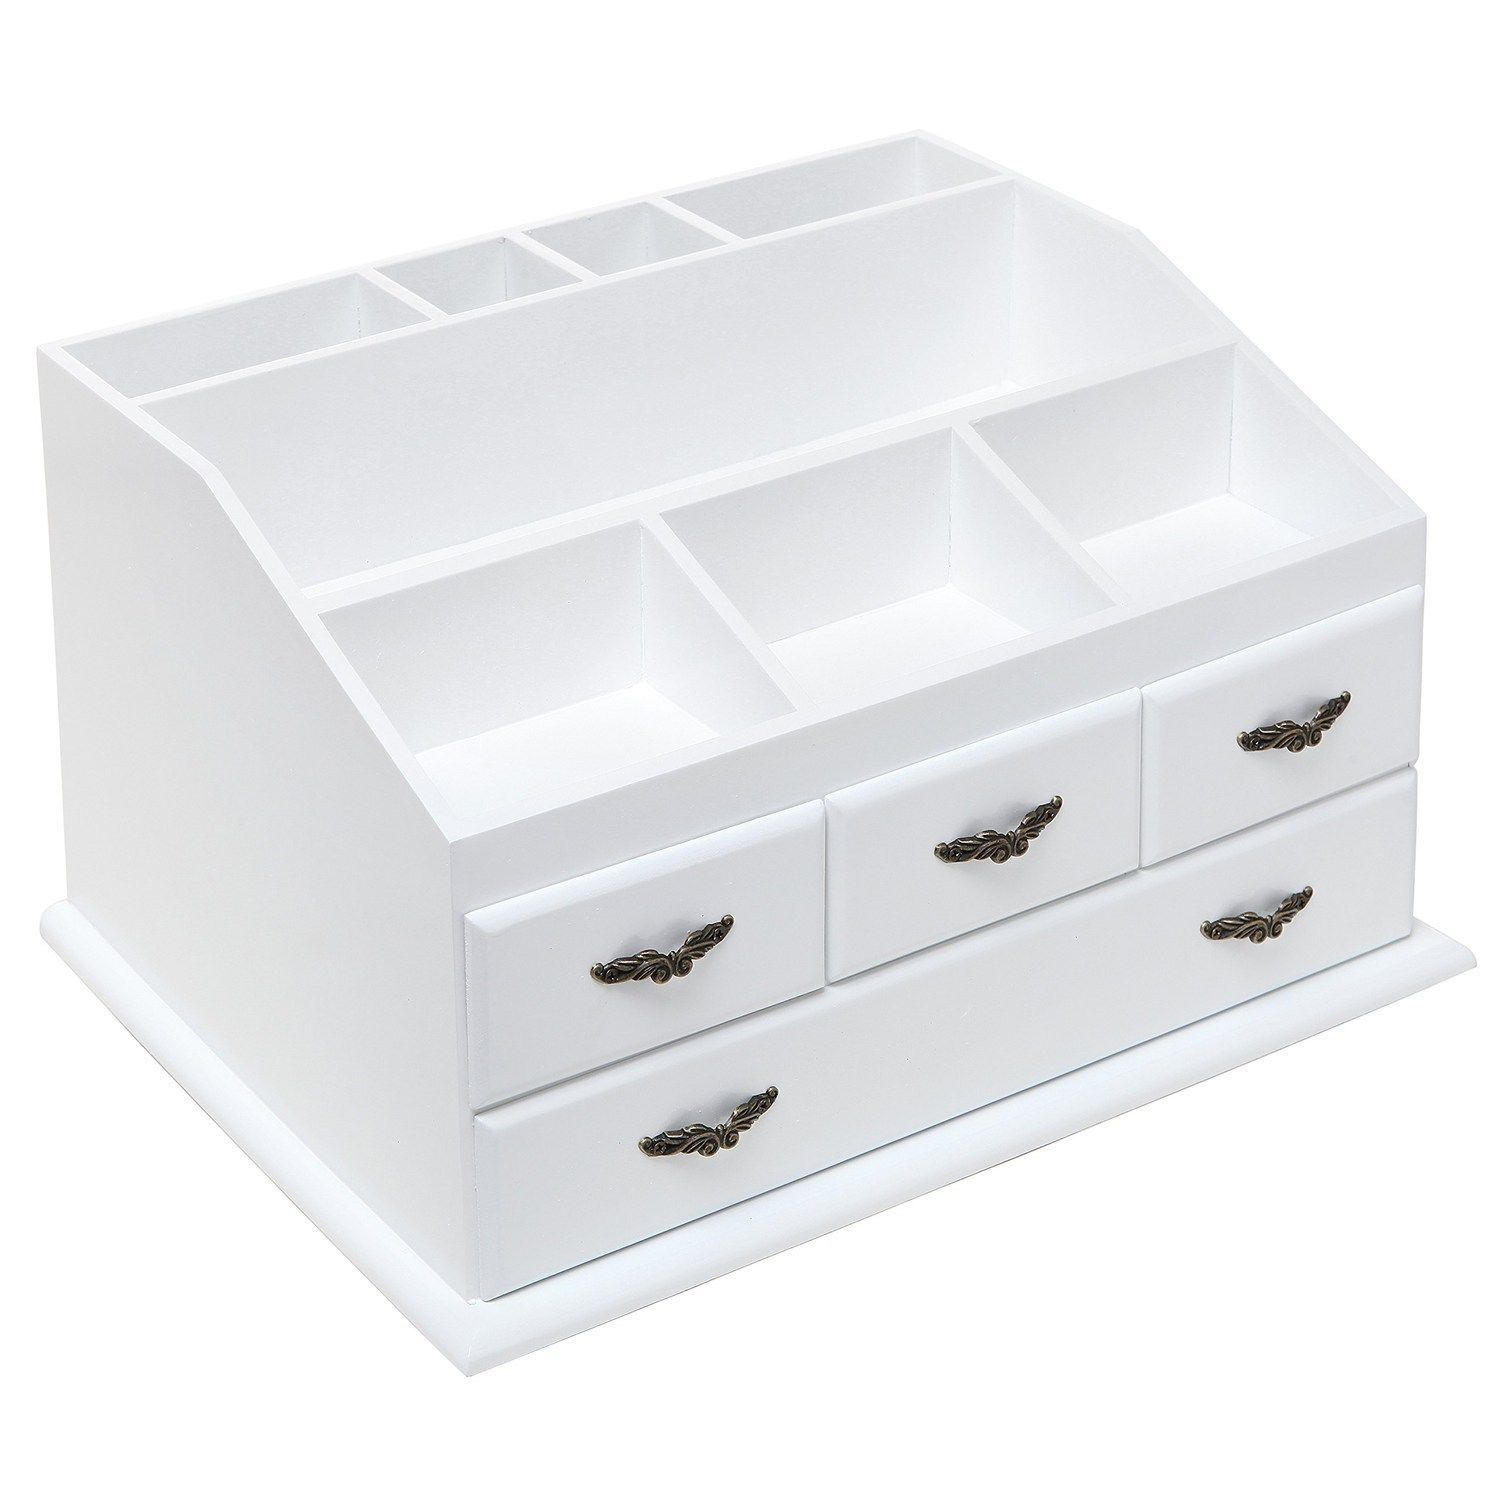 Lipstick Storage Containers